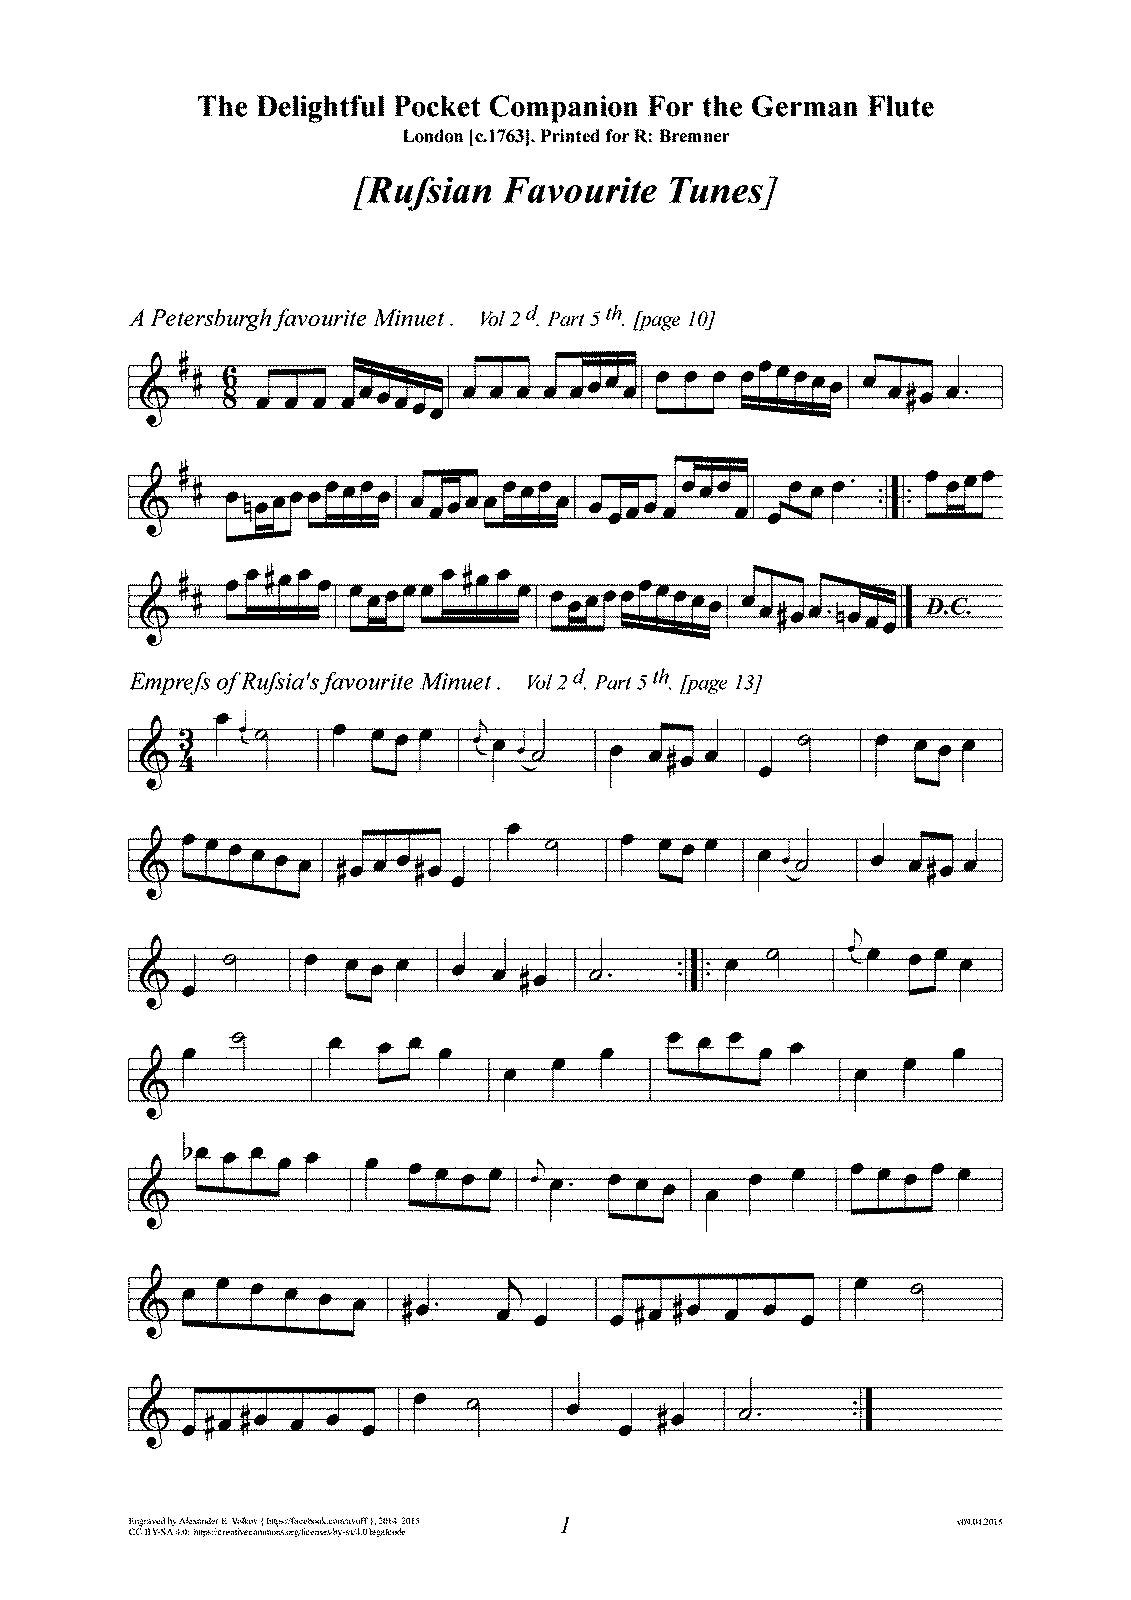 PMLP202400-The Delightful Pocket Companion for the Flute - Russian Tunes.pdf